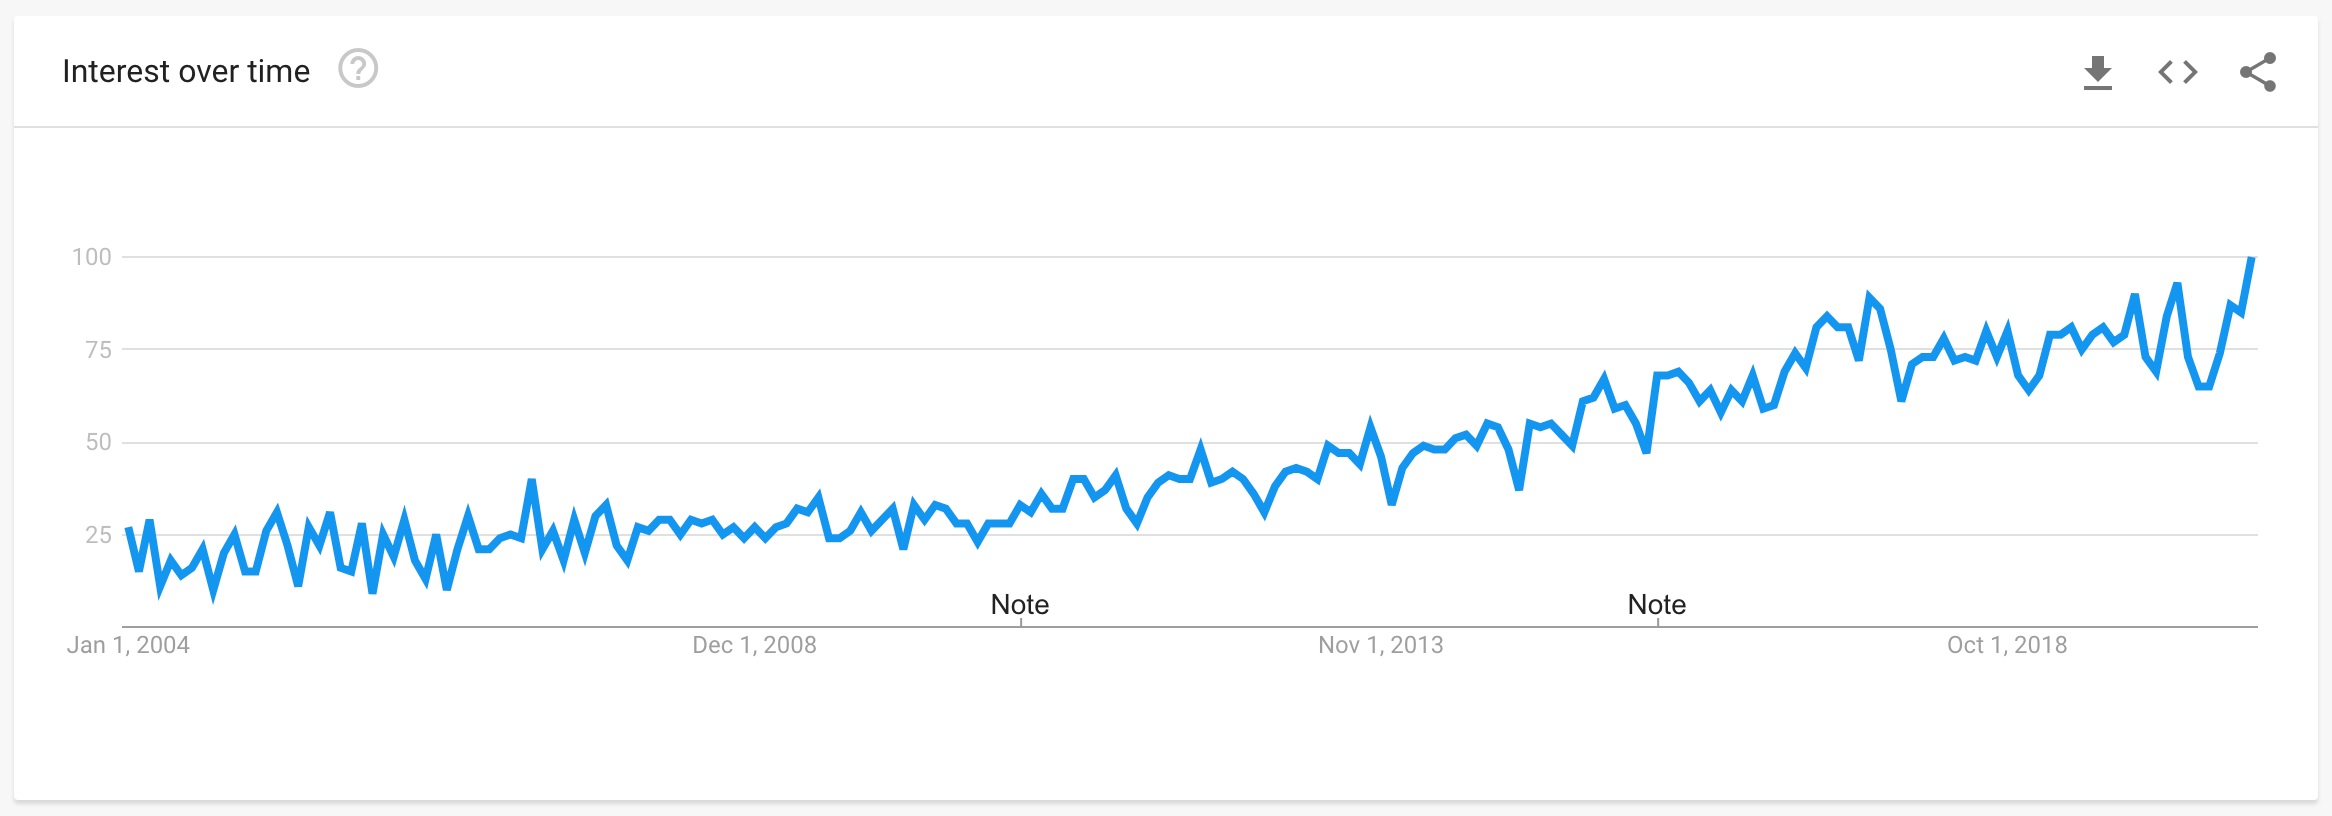 Google trends graph tracking the interest for customer experience from 2004 to 2020